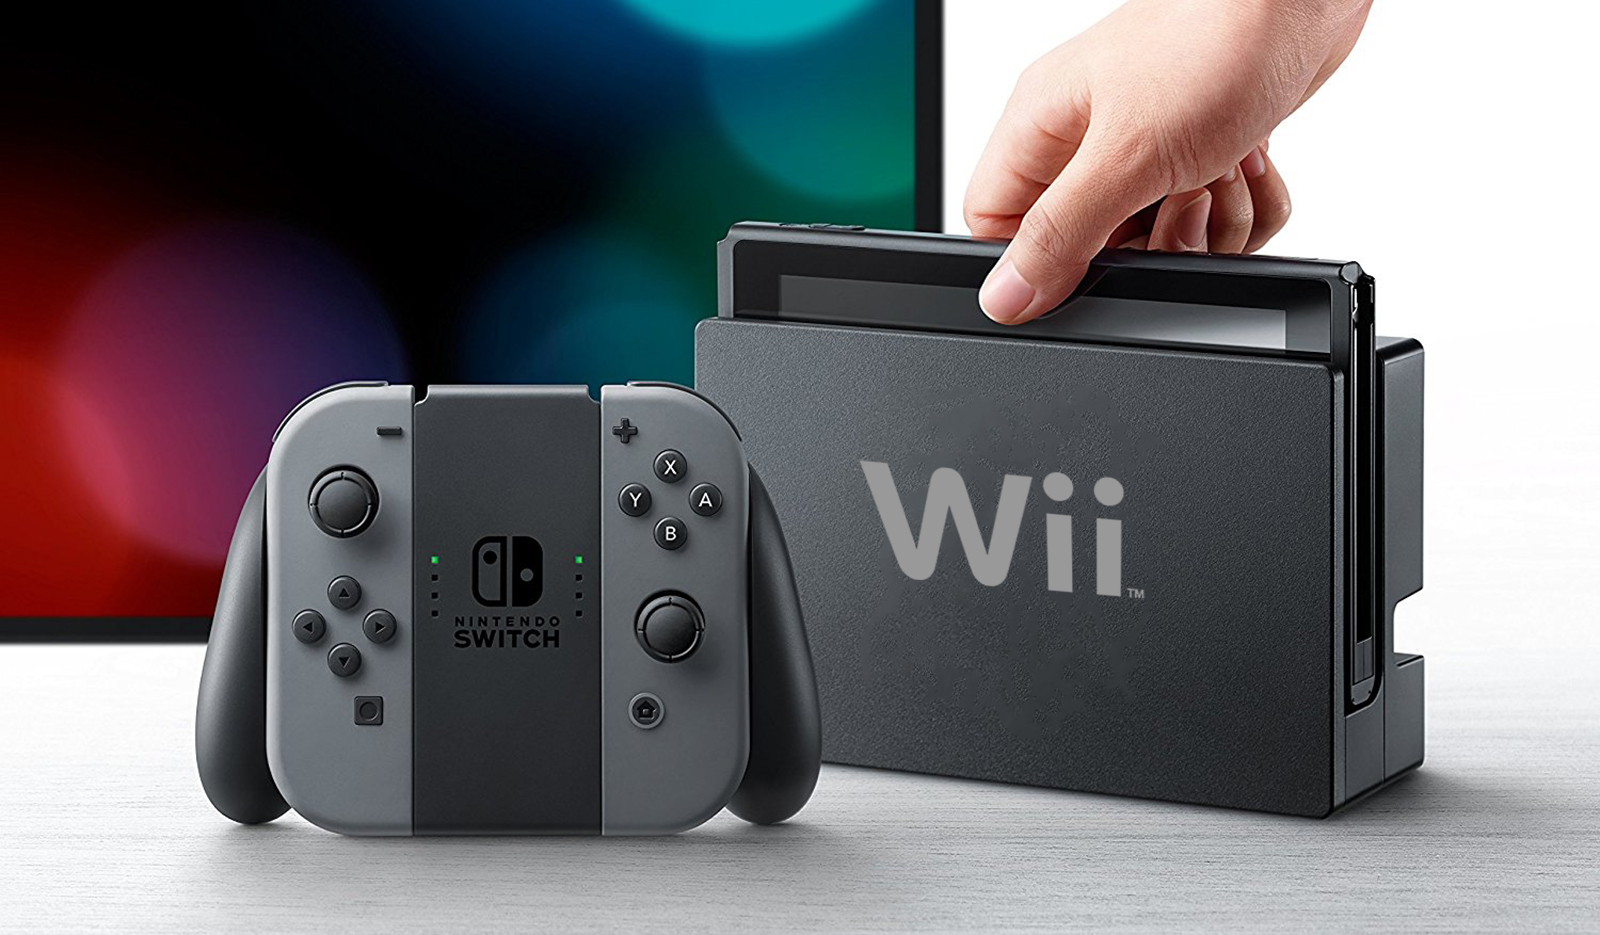 Wii games can be played on the Wii U GamePad - NintendoToday